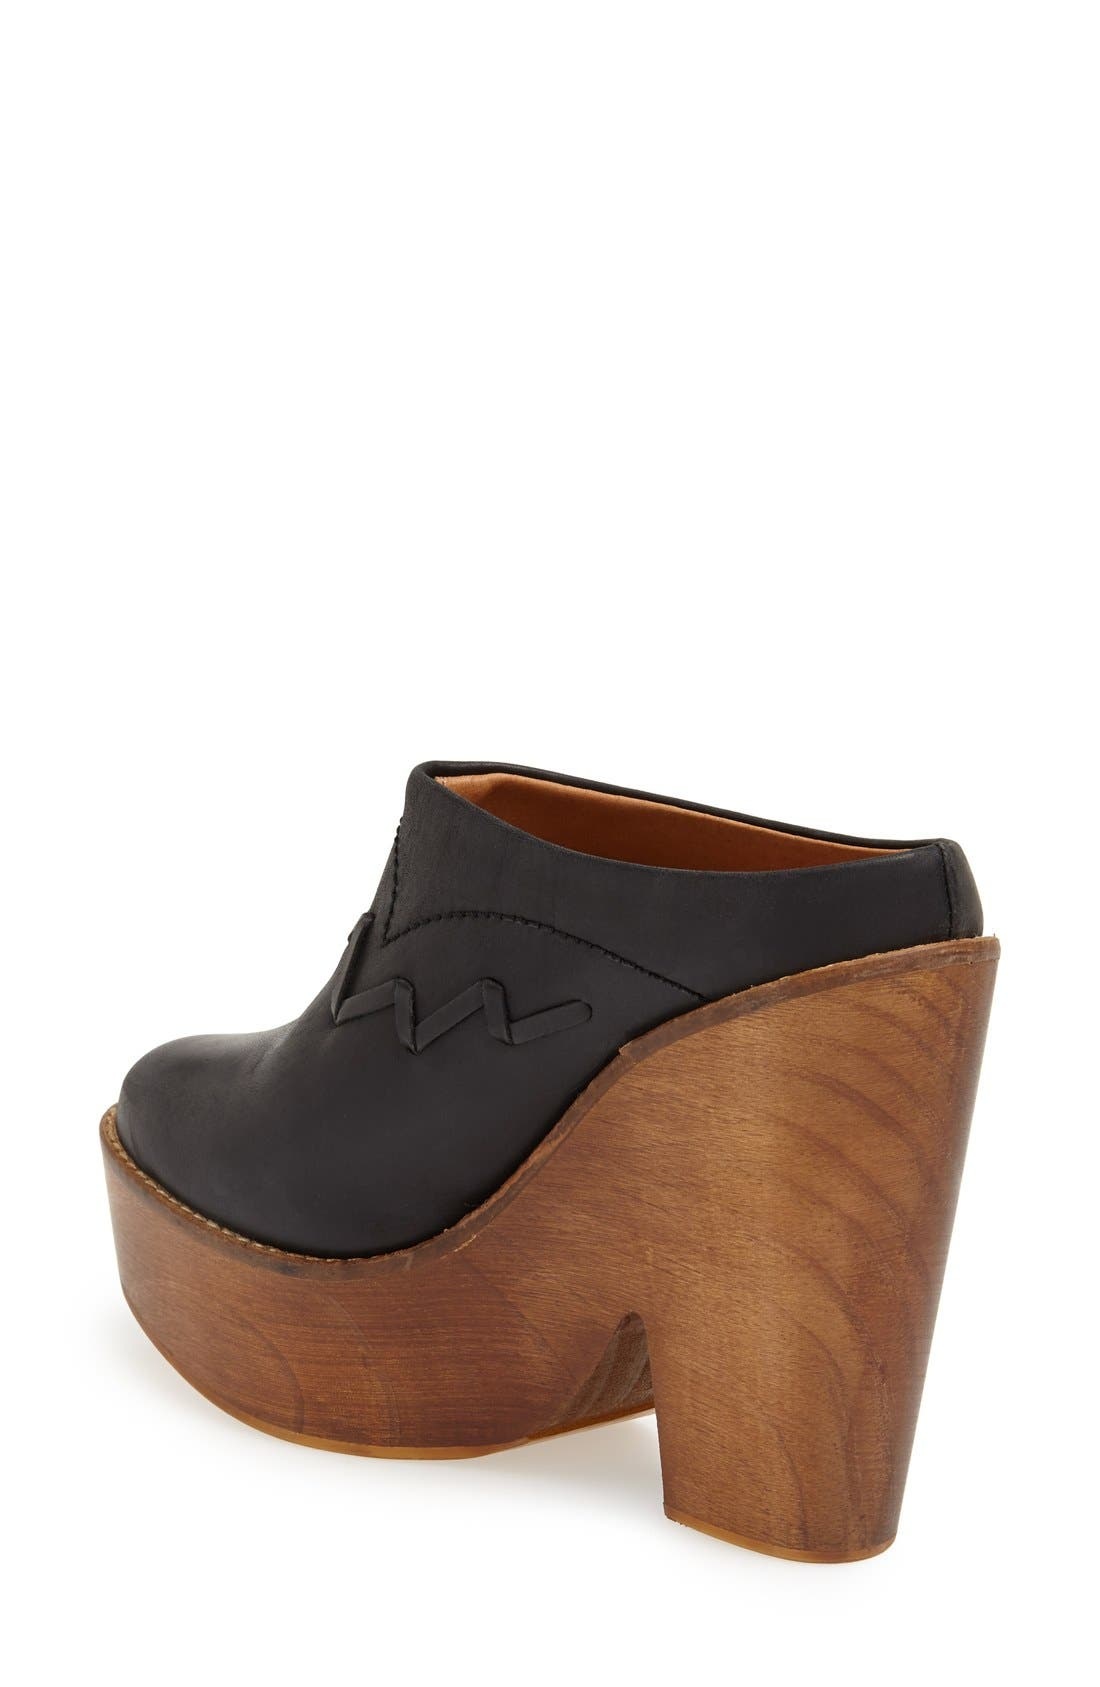 Alternate Image 2  - Free People 'Chance' Platform Clog (Women)